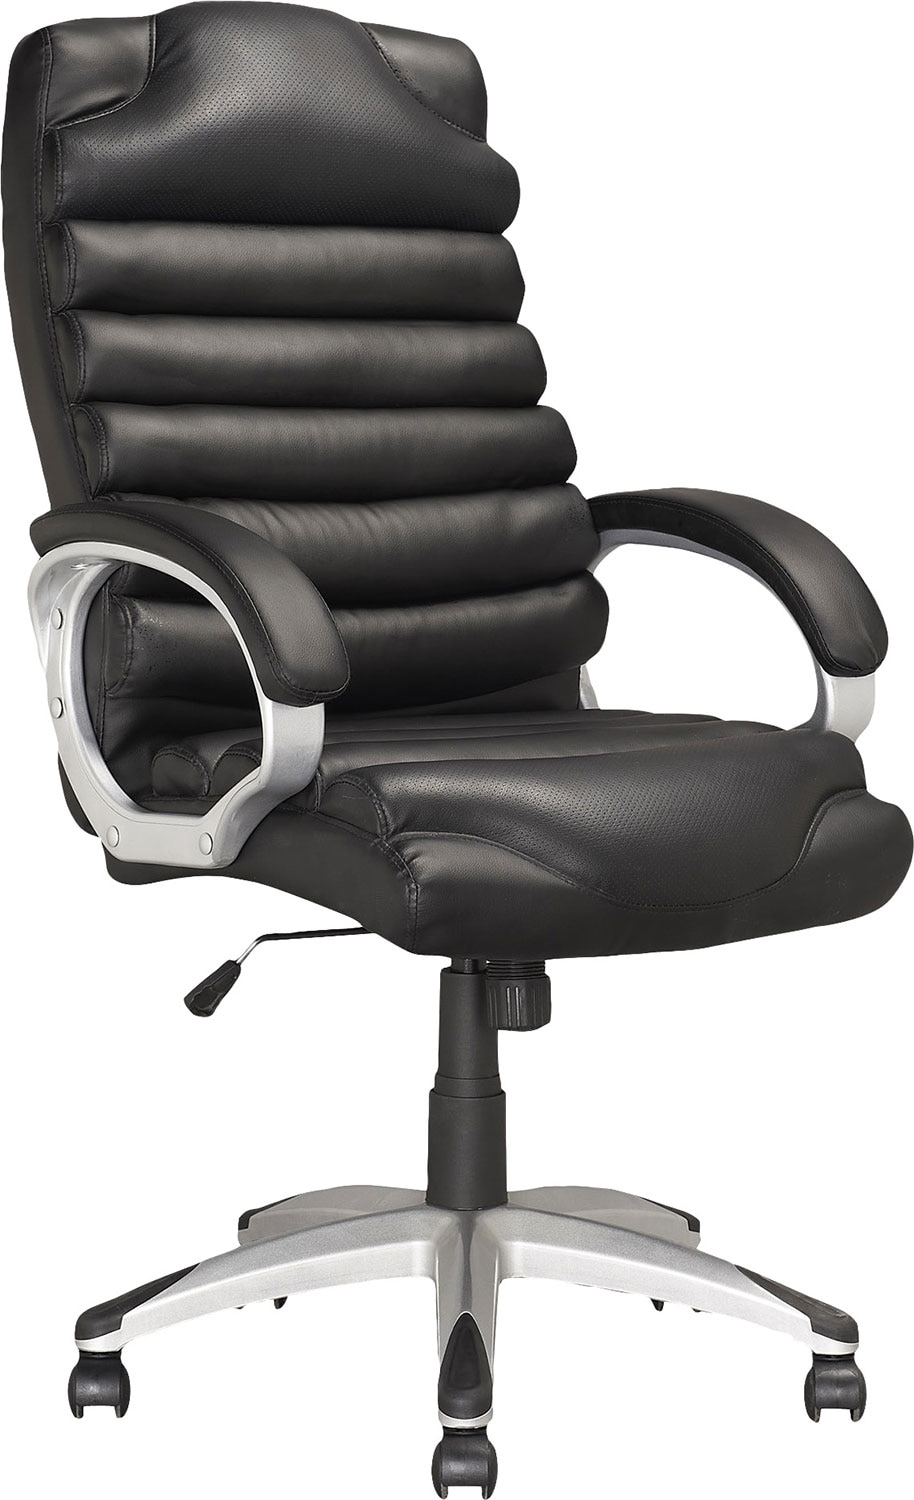 Home Office Furniture - Sacramento Foam-Padded Leatherette Executive Office Chair